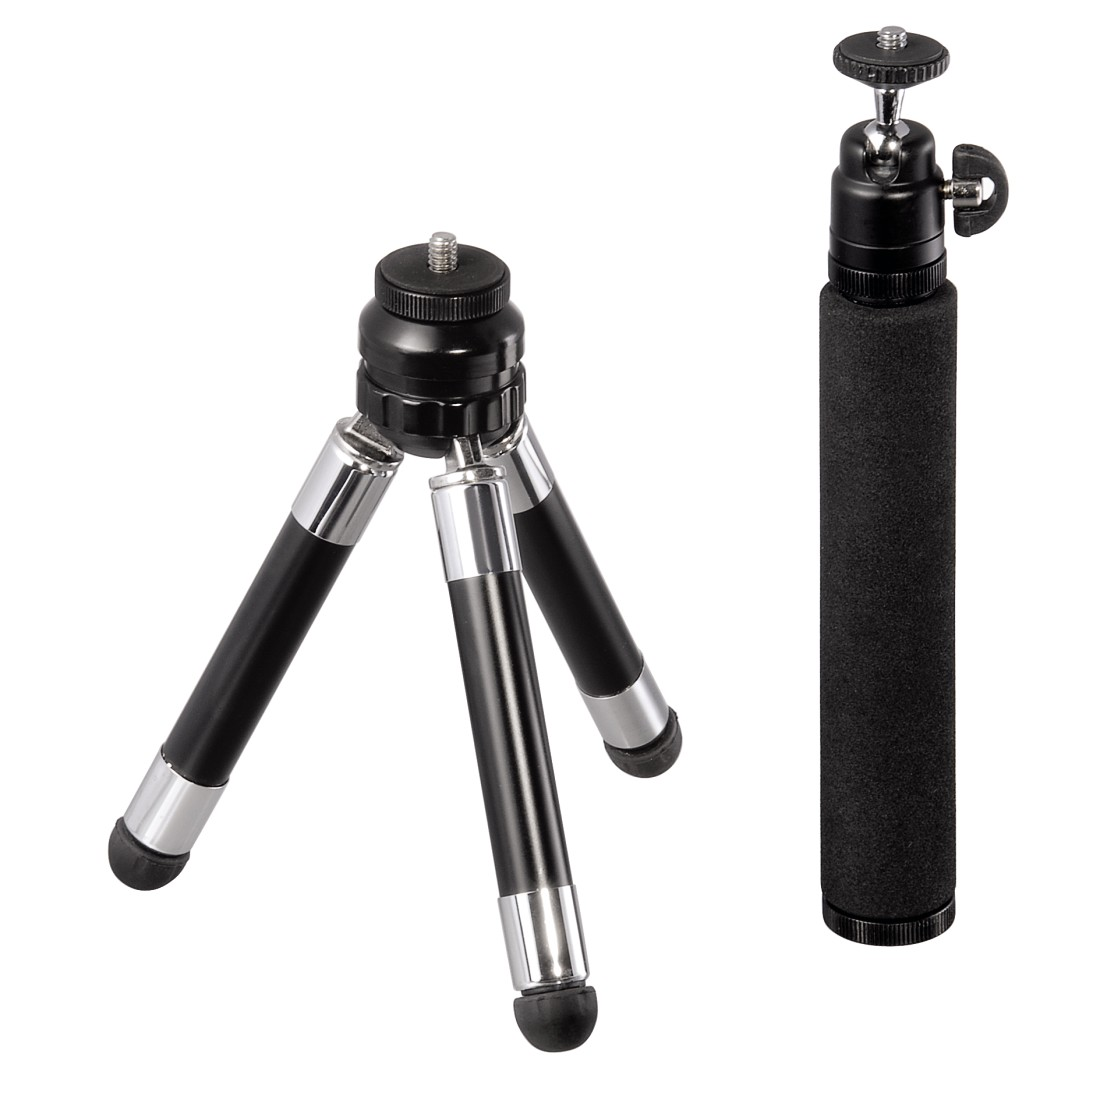 abx High-Res Image - Hama, Traveller Multi Table Top Tripod, with Removable Telescopic Tube